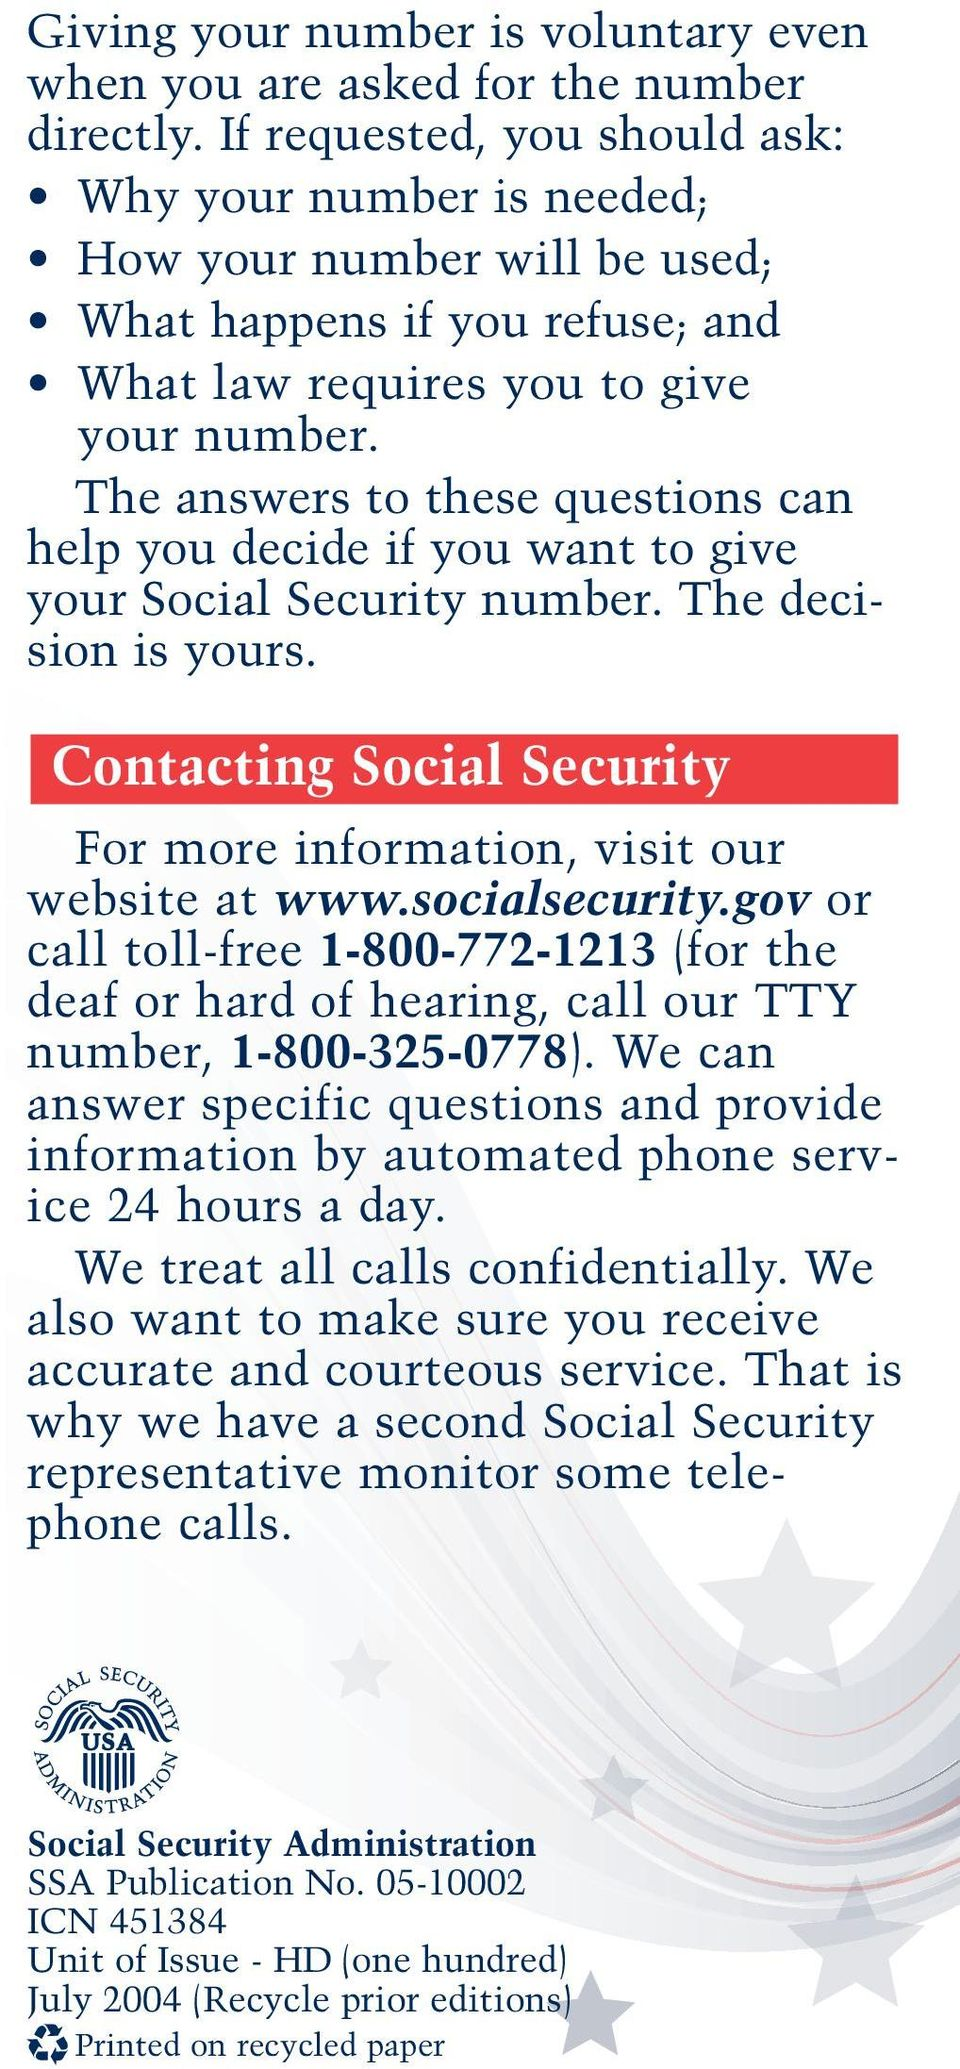 The answers to these questions can help you decide if you want to give your Social Security number. The decision is yours. Contacting Social Security For more information, visit our website at www.